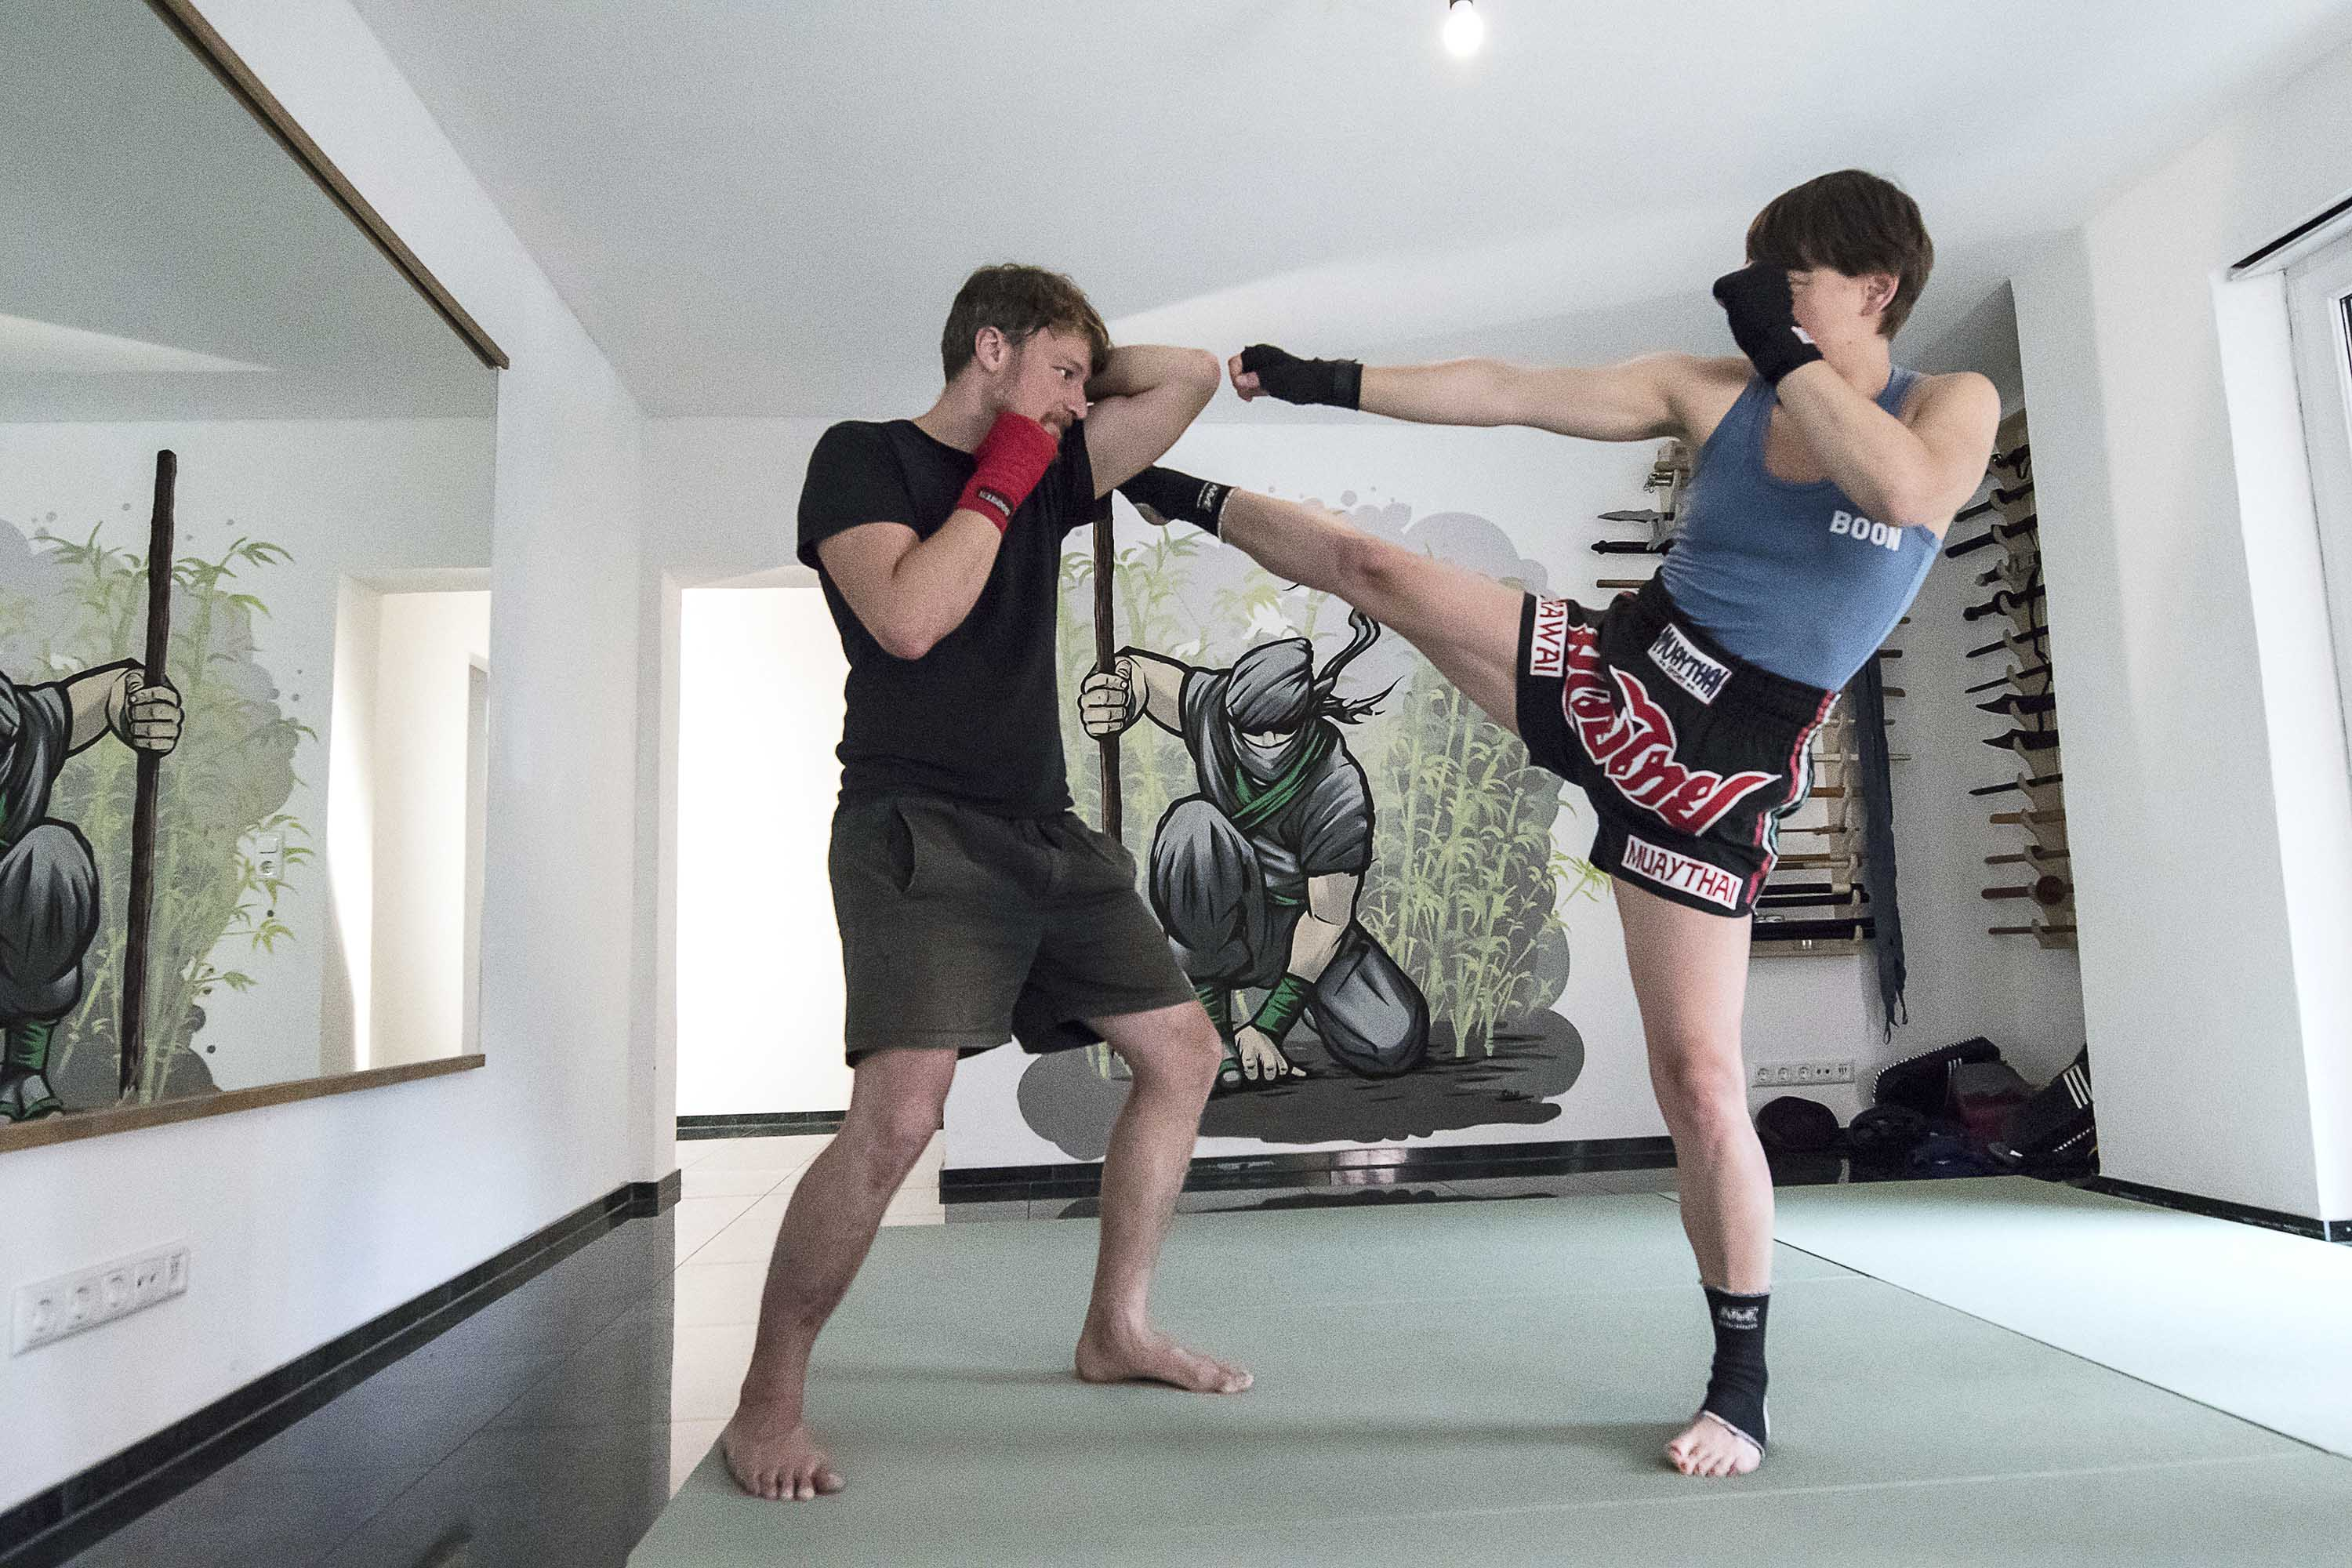 RONIN_DOJO_Traditionelles_thaiboxen_Training_08